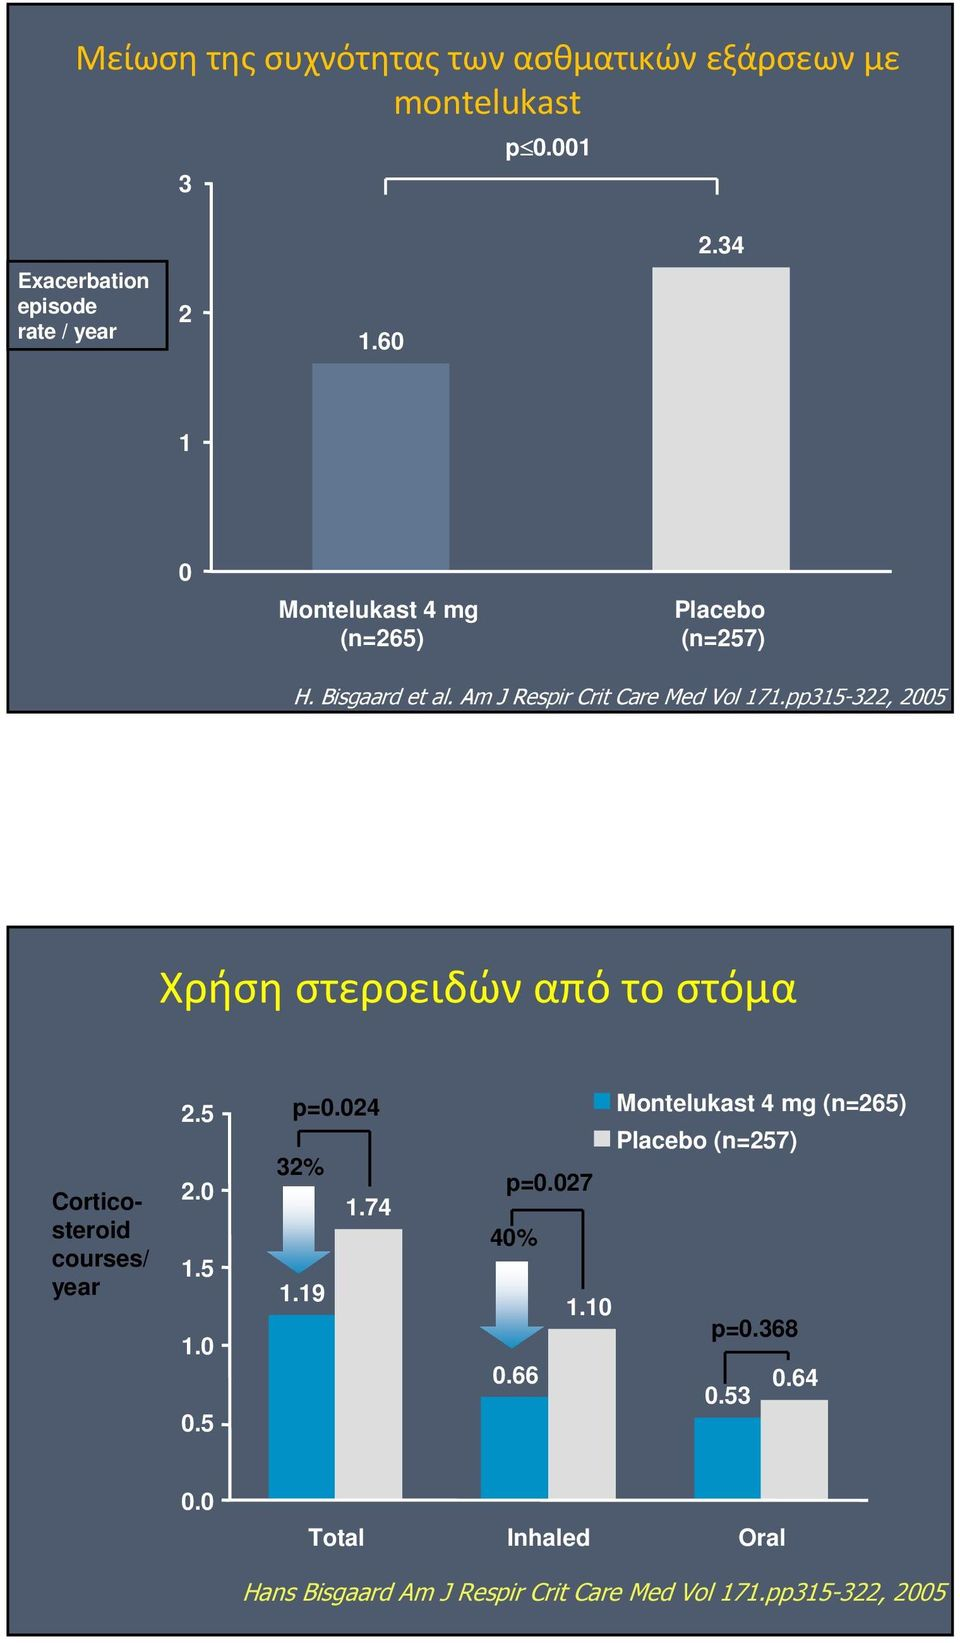 pp315-322, 2005 Χρήση στεροειδών από το στόμα Corticosteroid courses/ year 2.5 2.0 1.5 1.0 0.5 p=0.024 32% 1.74 1.